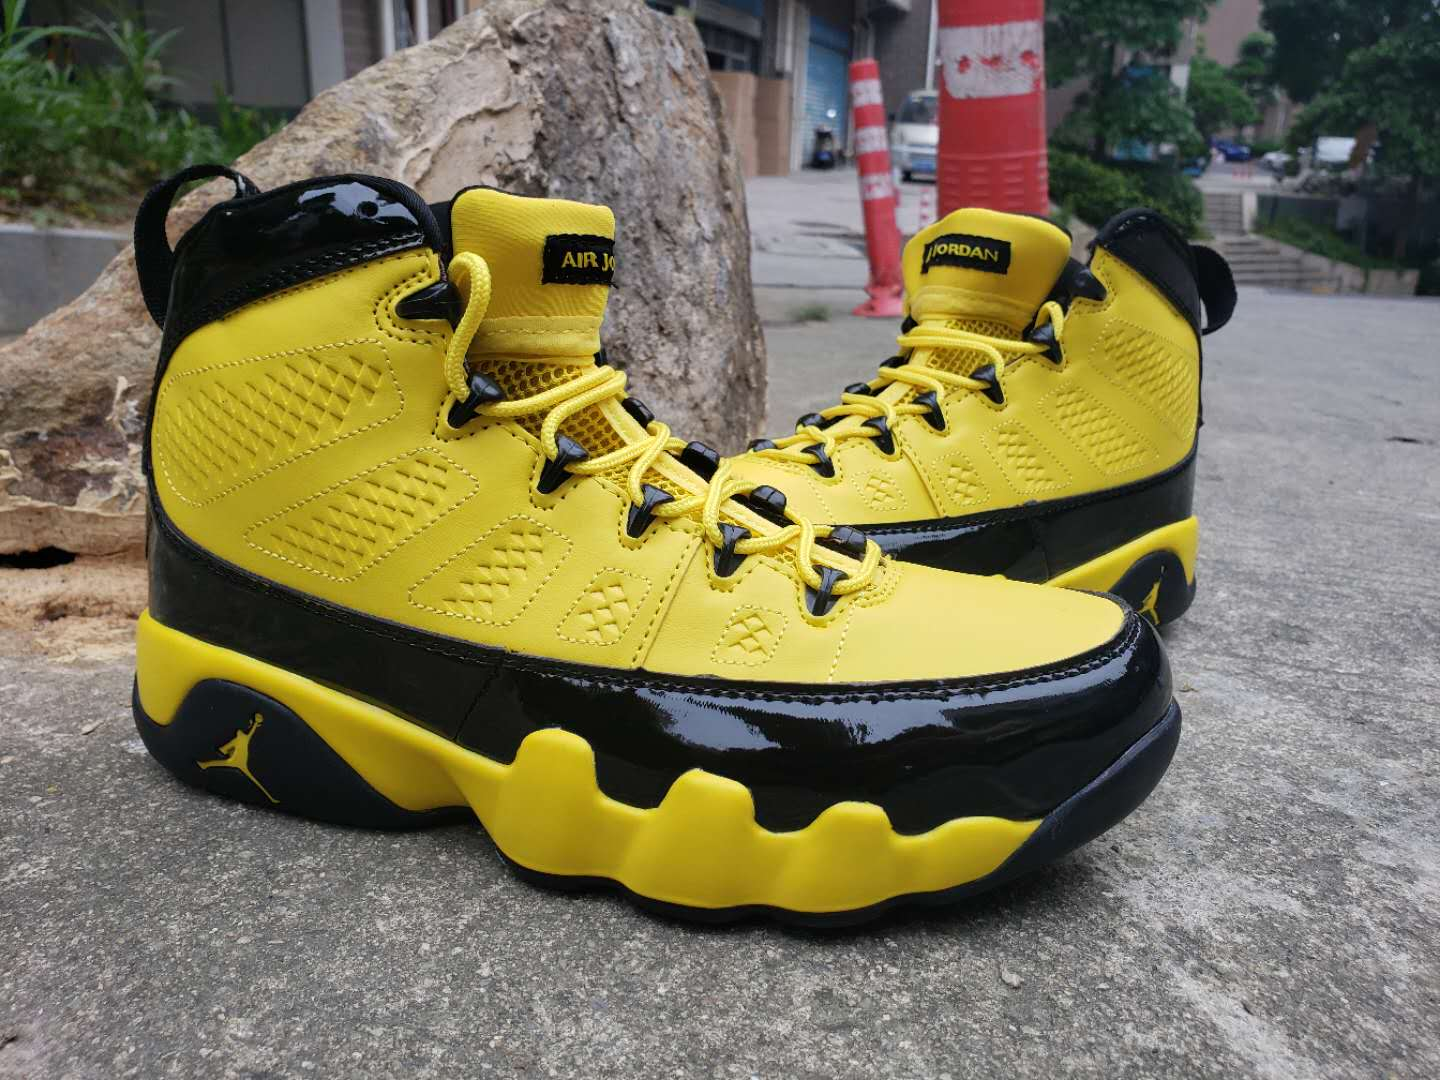 2019 Air Jordan 9 Bumblebee Yellow Black Shoes